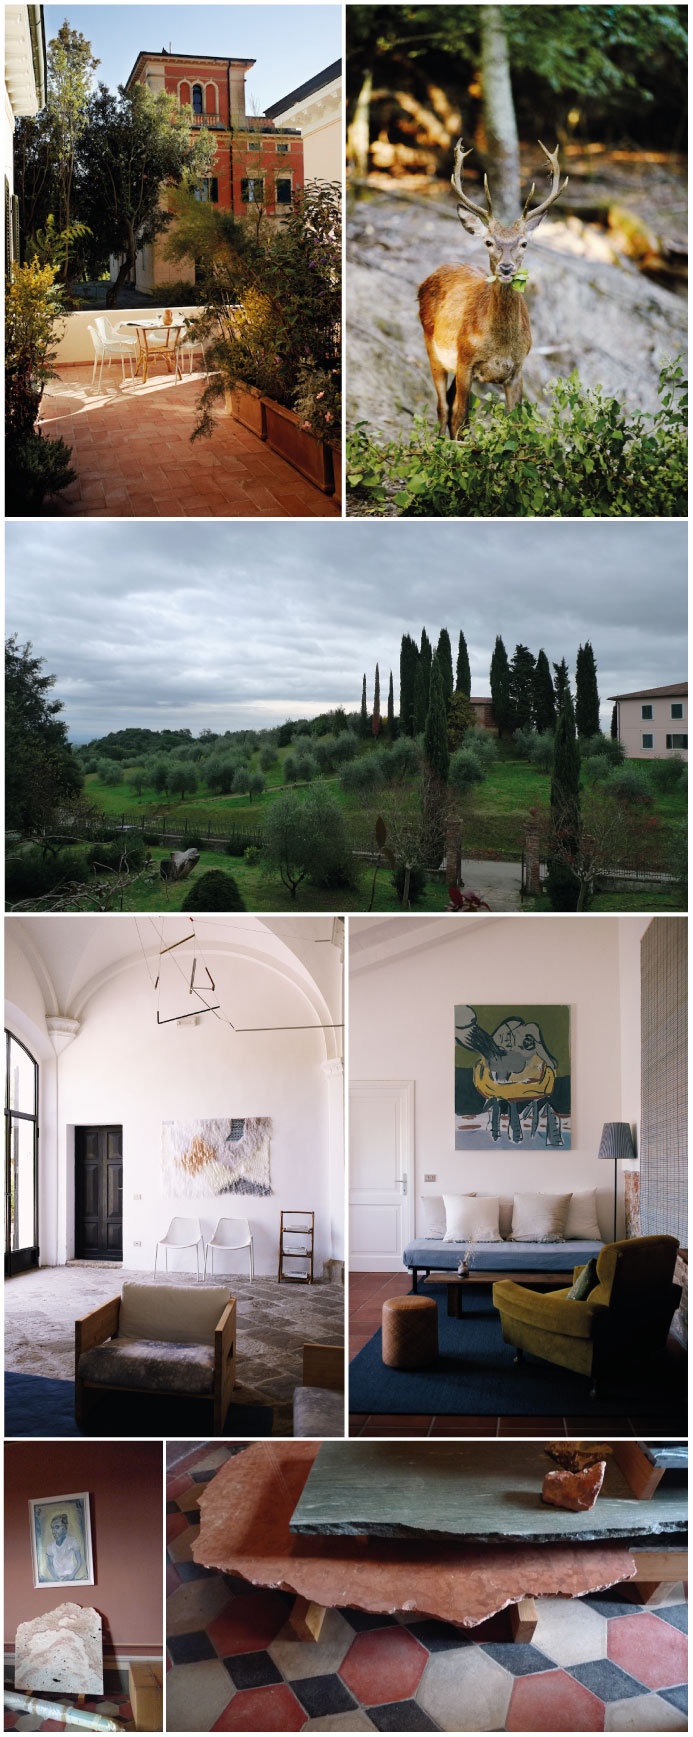 An artist's retreat. Photo 1, 2, 4 & 5 © Villa Lena, by Kuoni. Photo 3, 6 & 7 © Plume. Courtesy of Villa Lena